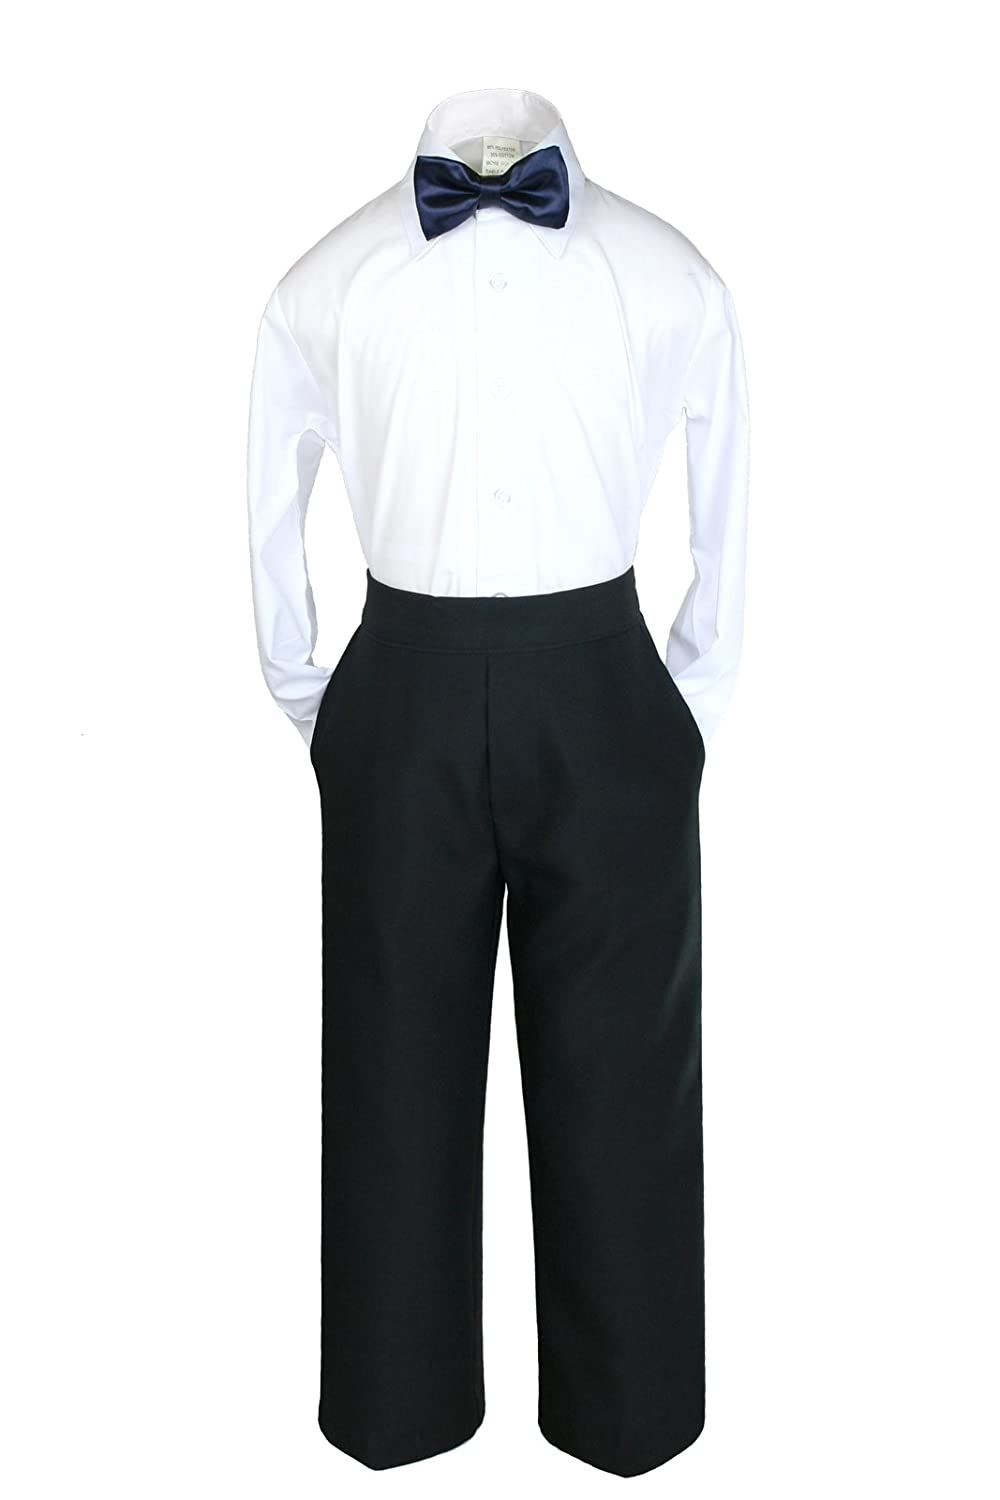 2T, Navy Bow tie Unotux 6pc Formal Boy Black Tuxedo Suit w//Satin Colors Bow tie from Baby Boy Teen